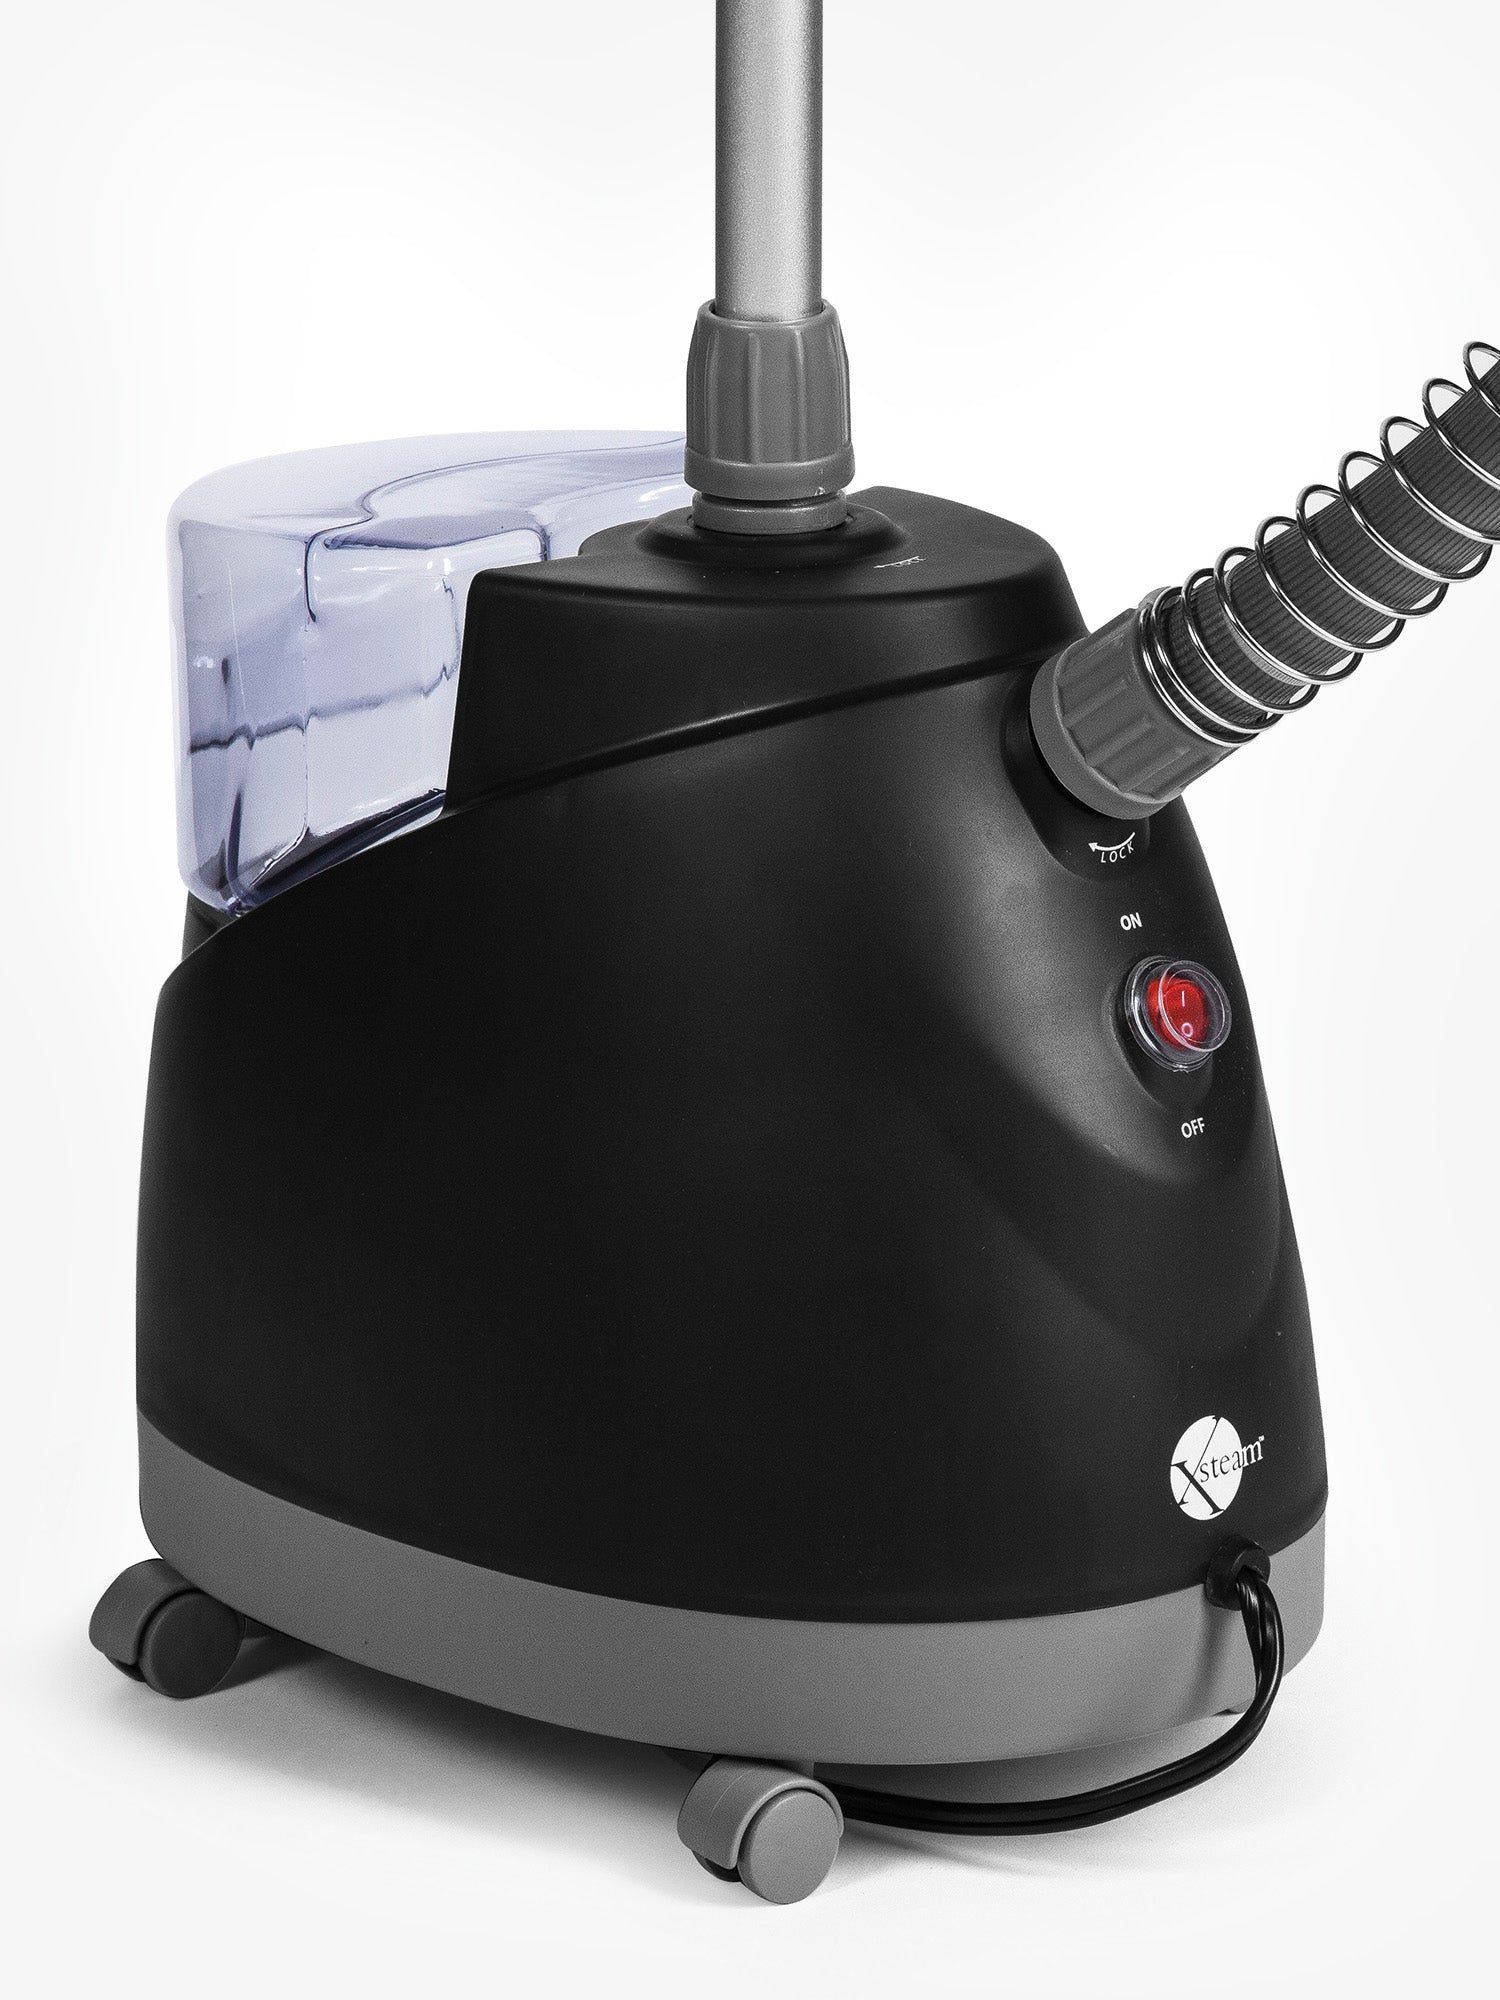 The Rival Garment Steamer